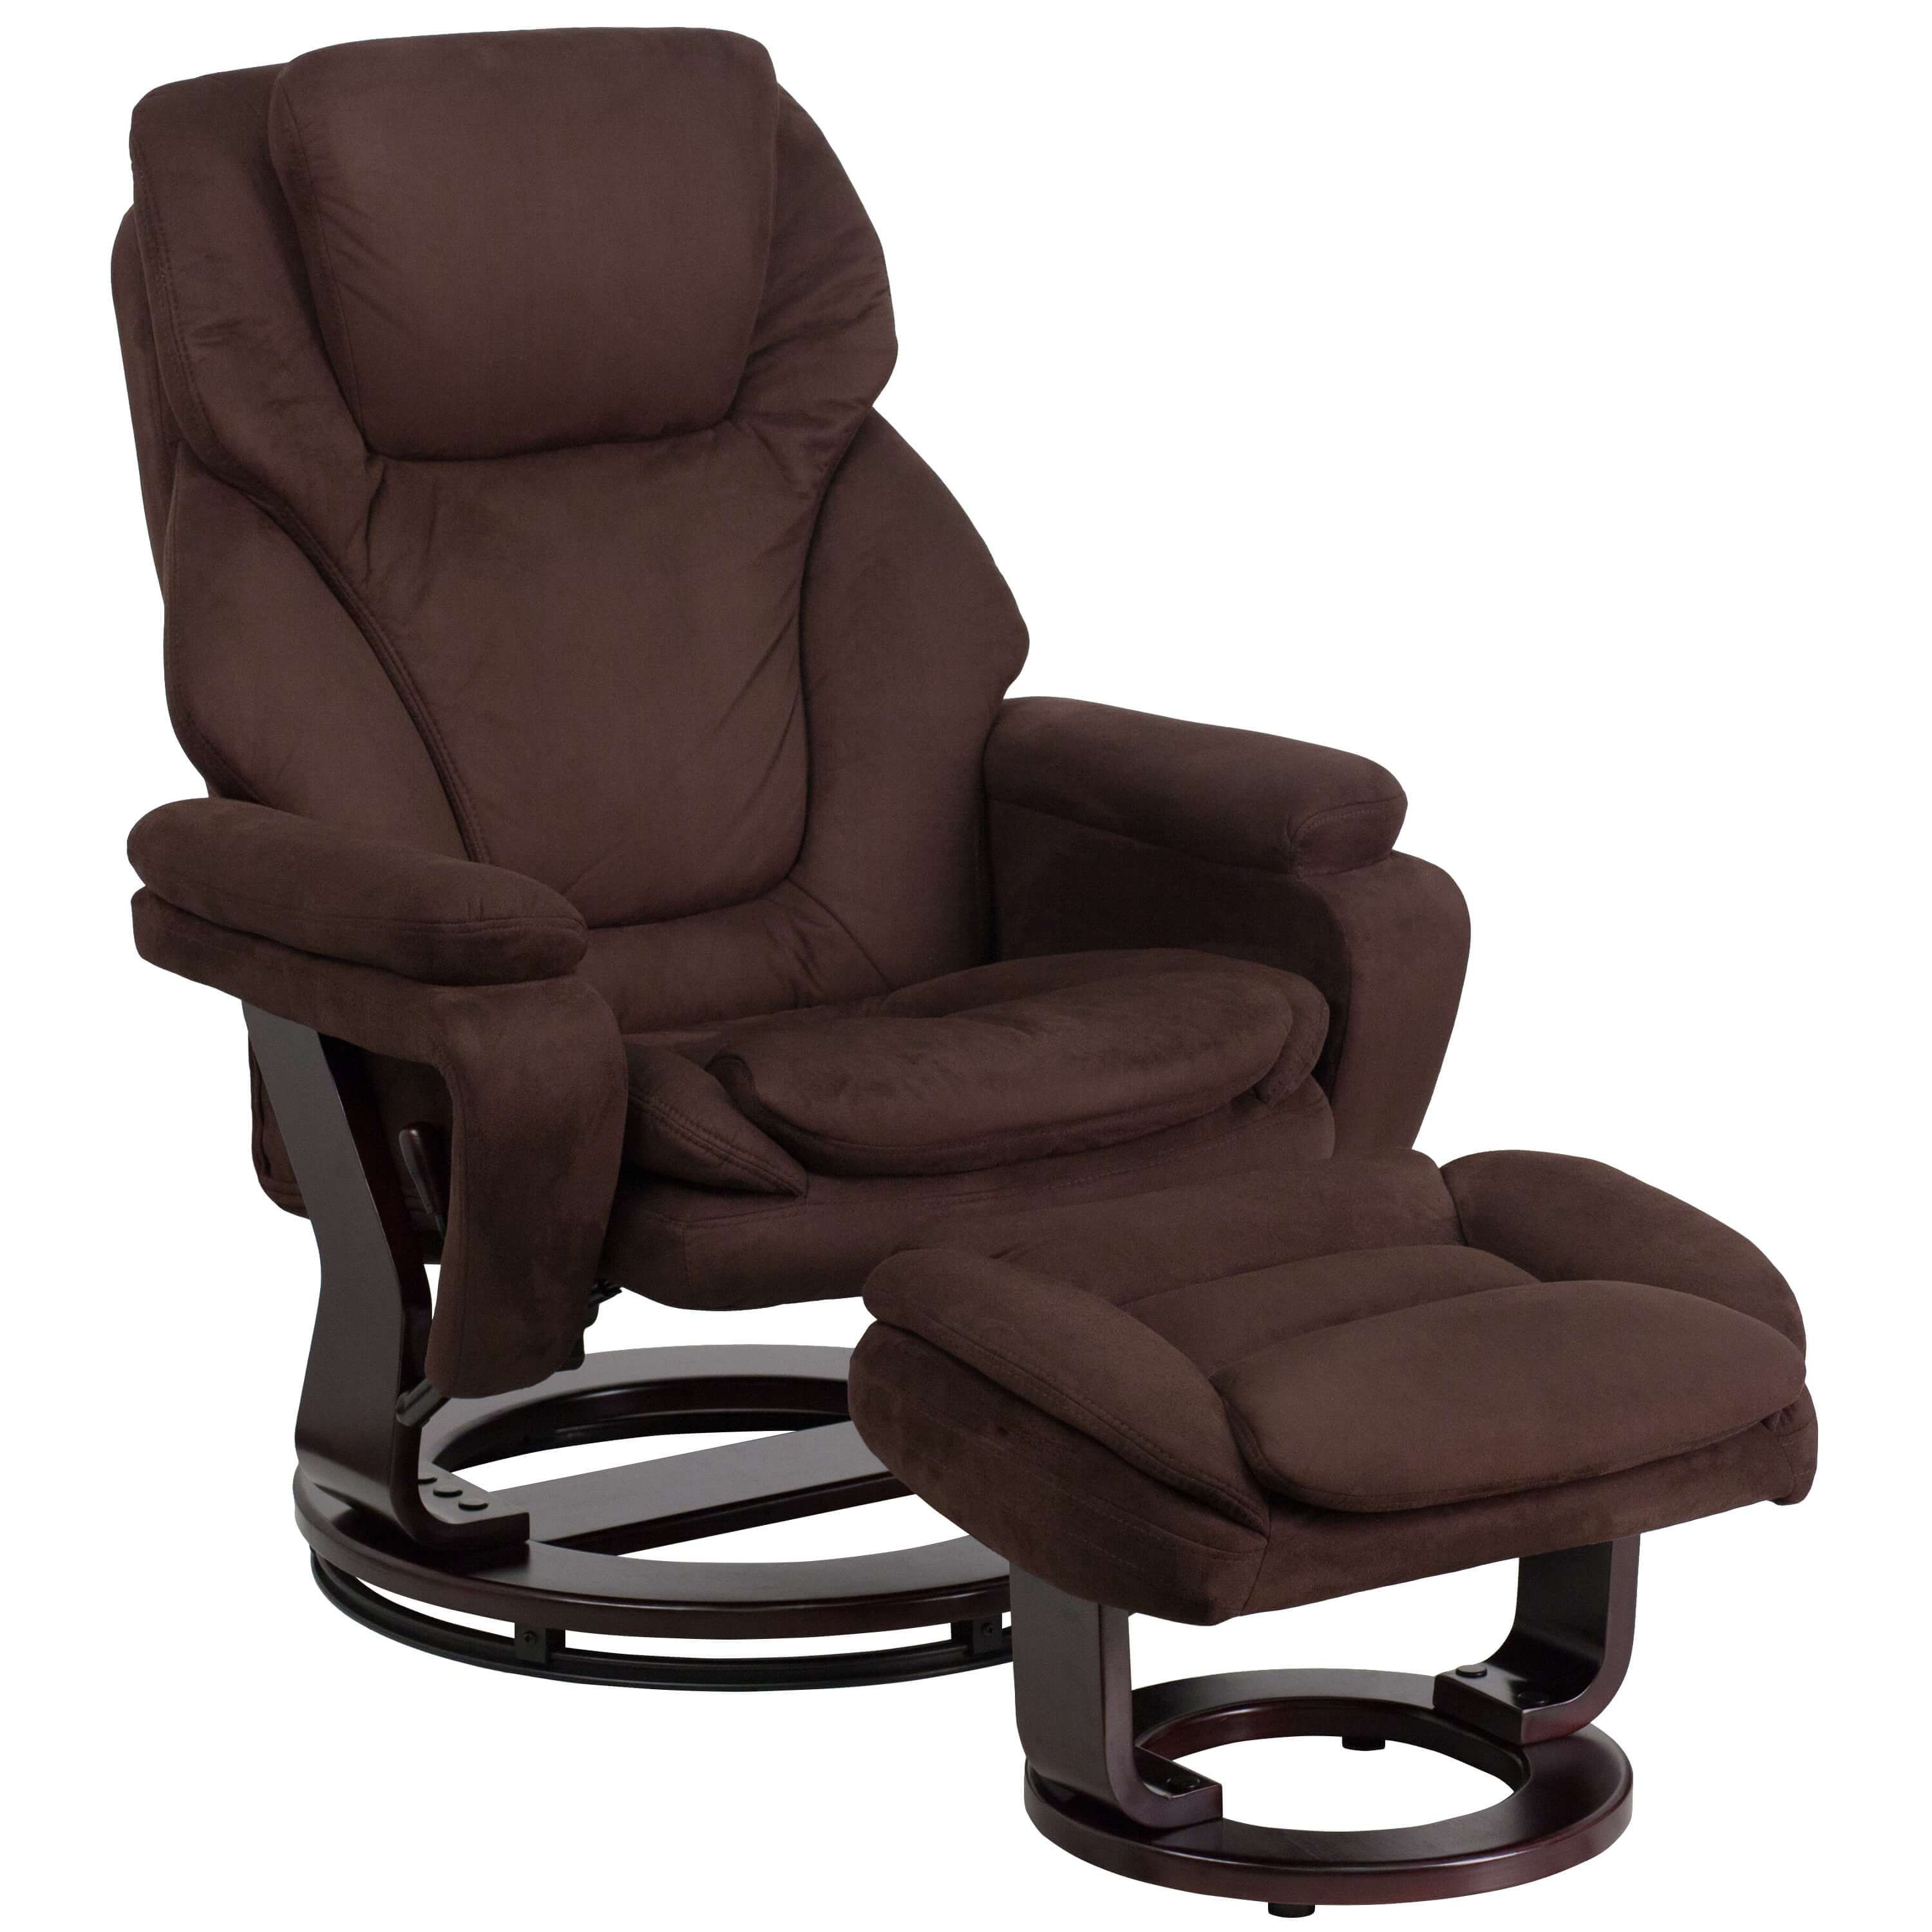 Contemporary recliner brown recliner